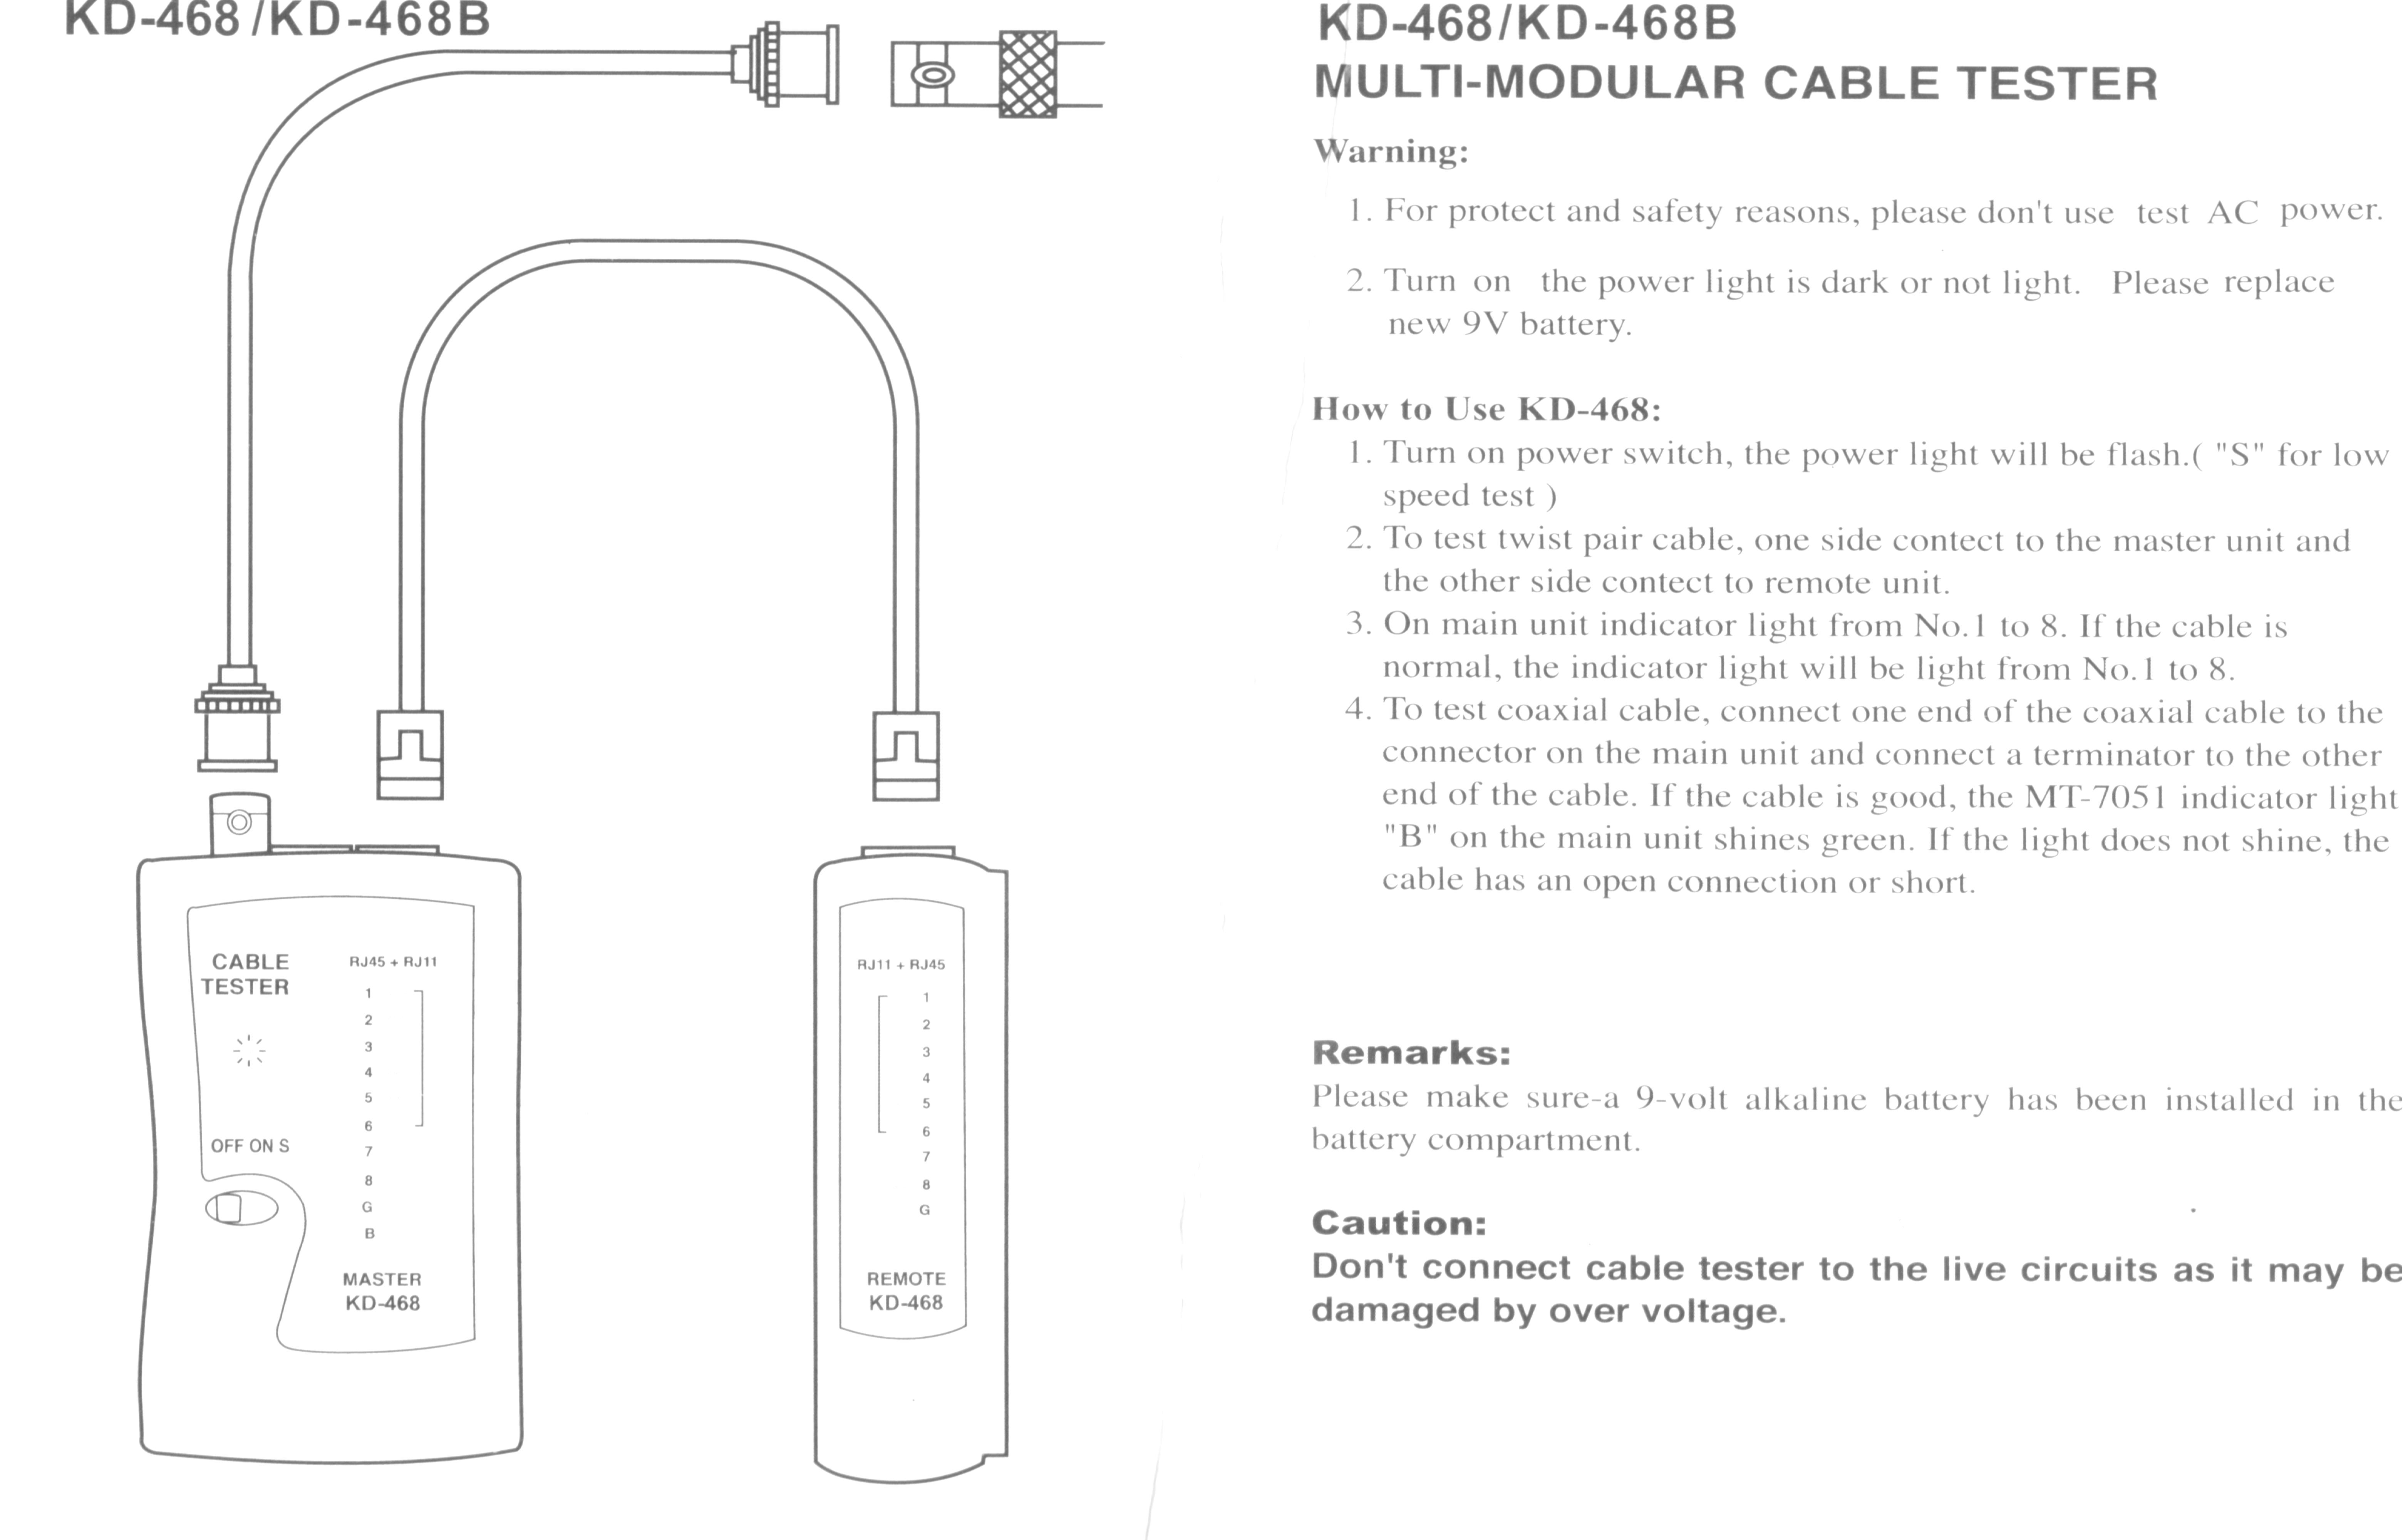 cisco console cable wiring diagram with Lab Fict on Rs232 Connector Diagram in addition Rj11 To Rj45 Pinout Diagram Manual User Pdf further Lab fict as well 352078 Wiring A Rj1112 To Db15 Adapter Help further Wiring Diagram For Crossover Ether  Cable.